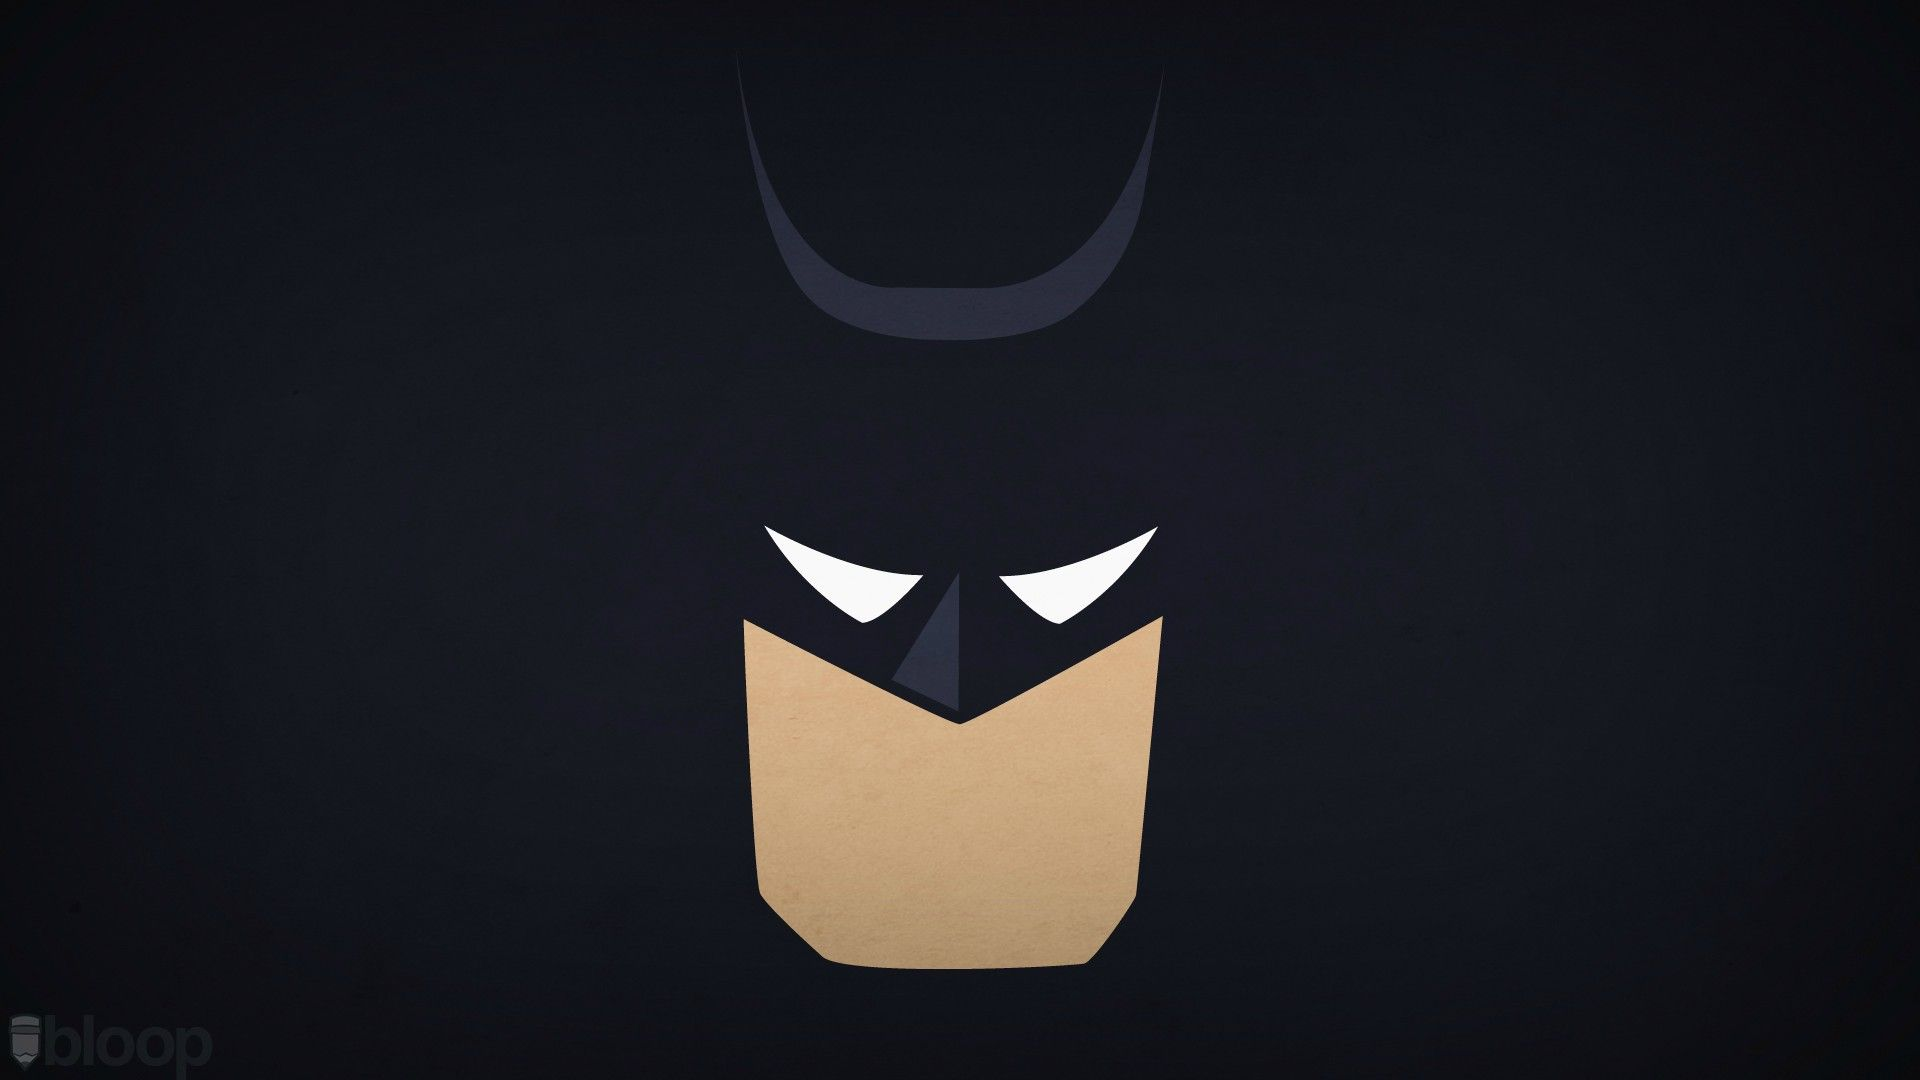 62 Best Free Minimalist Superhero Wallpapers Wallpaperaccess